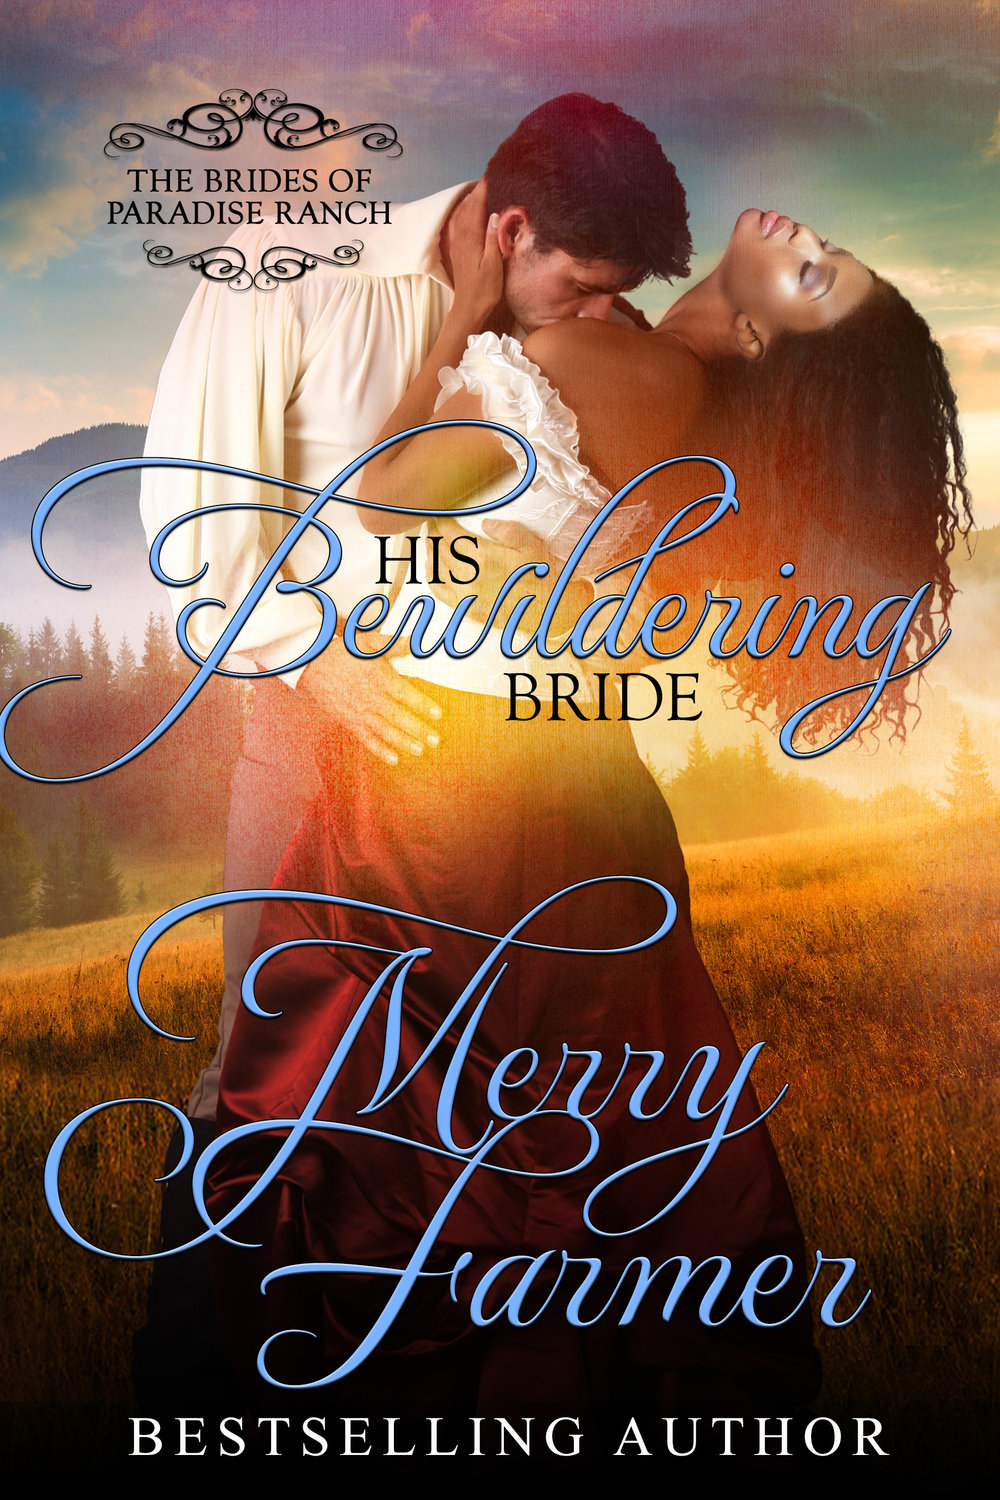 "His Bewildering Bride (Book 3) - Seamstress Wendy Weatherford is overjoyed when she is offered the chance to be a mail-order bride for one of the men of Paradise Ranch. When she arrives in Haskell, Wyoming, her intended groom takes one look at her and refuses to go through with the wedding. He wasn't expecting his bride to be a former slave. Abandoned at the altar and alone on the frontier, Wendy doesn't know where to turn.Until rescue comes in an unlikely form.Travis Montrose has plans to start a new job and eventually own his own ranch, not to marry his brother's rejected bride. But he can't stand by and watch the exotic and beautiful Wendy suffer, particularly not when she proves to be a woman of strength and substance. Their unconventional union stirs up trouble from the start, even as it stirs passions.When Wendy is given an opportunity to compete for the chance to own her own dress shop, Travis will stop at nothing to help her win against a crooked competitor…even if it means sacrificing his future.PLEASE BE ADVISED: Steam Level = HOTIf you would like to read this story without any ""scenes,"" check out Wendy: The Bewildering Bride"